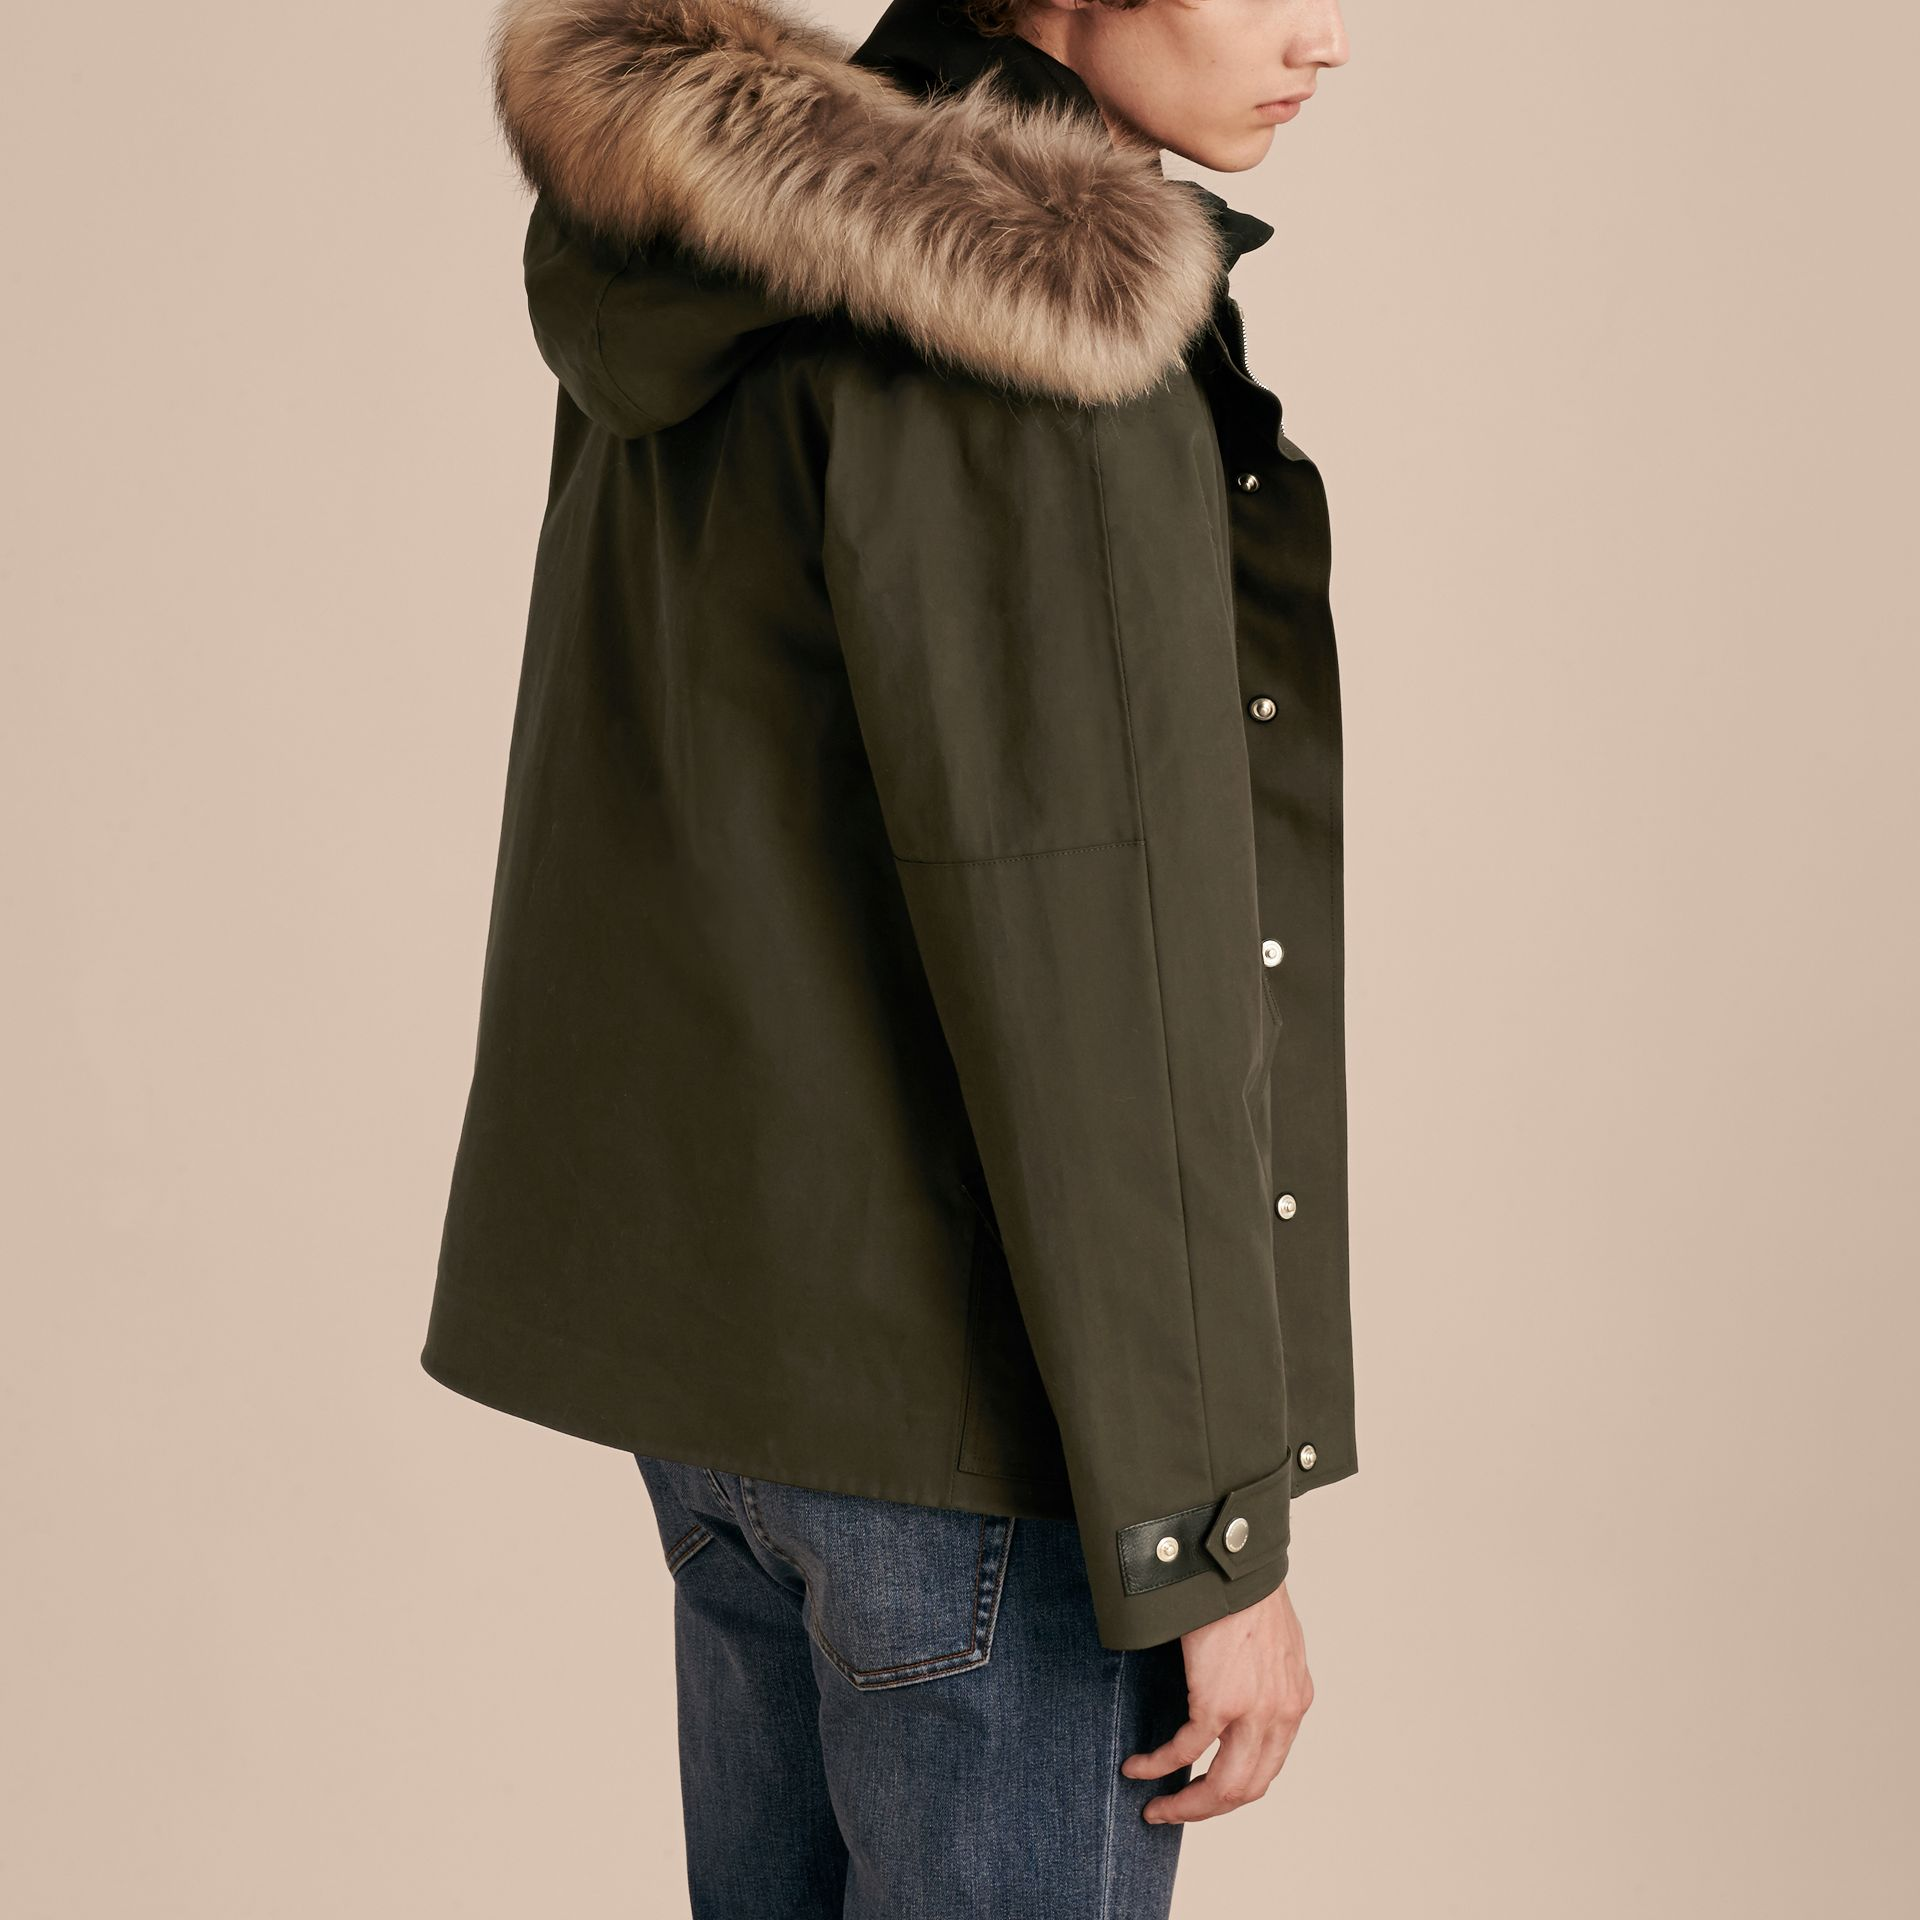 Dark olive Bonded Cotton Parka Jacket with Down-filled Warmer - gallery image 2